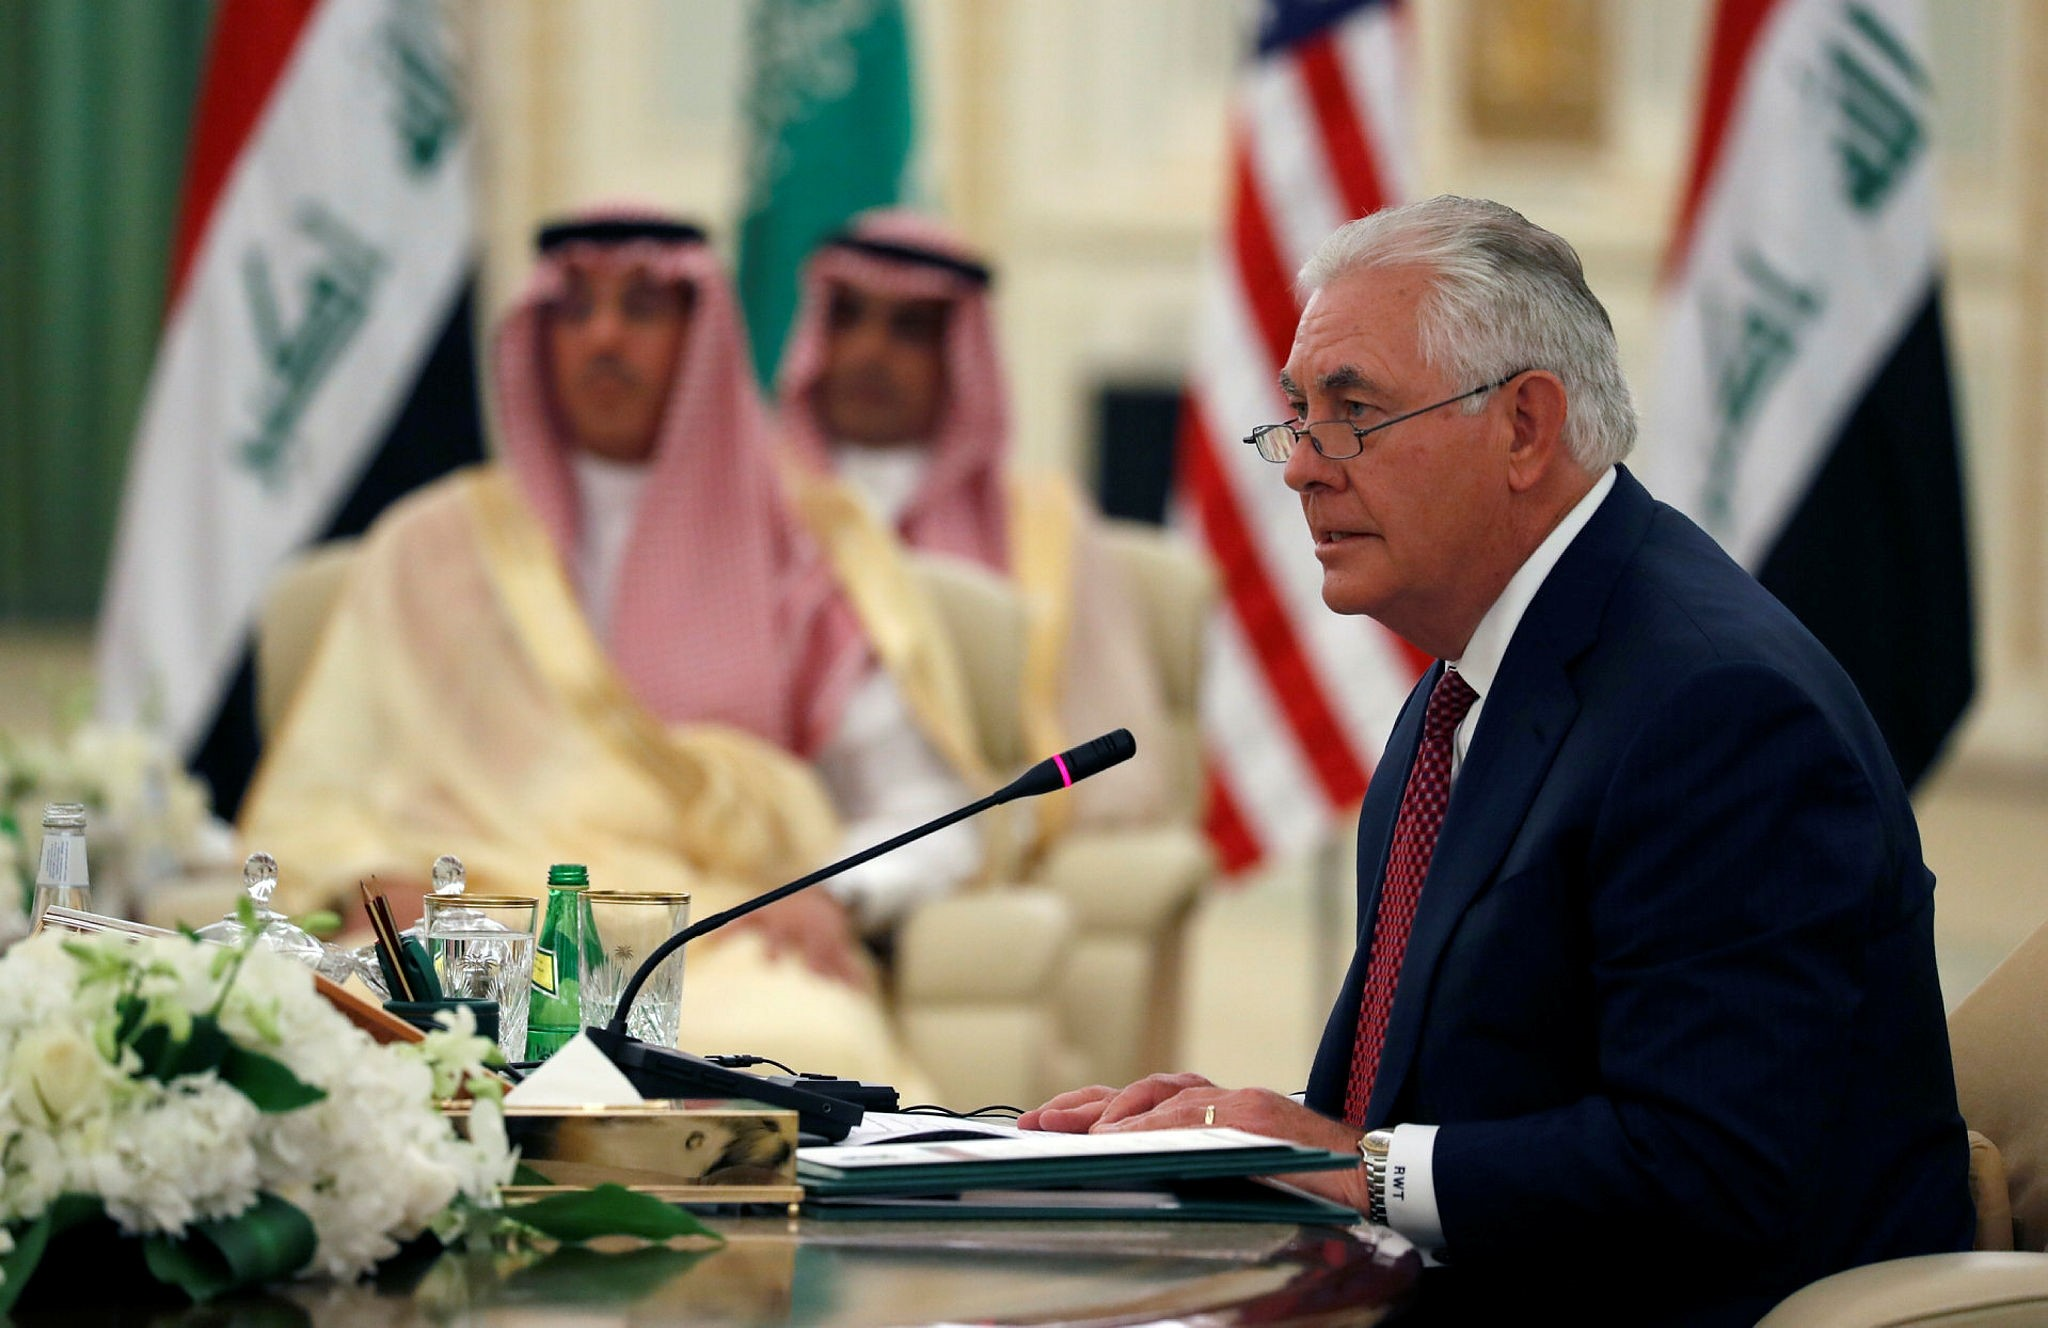 U.S. Secretary of State Rex Tillerson speaks during a meeting of the Saudi-Iraqi Bilateral Coordination Council with Saudi King Salman and Iraqi Prime Minister Haider al-Abadi in Riyadh, Oct. 22.